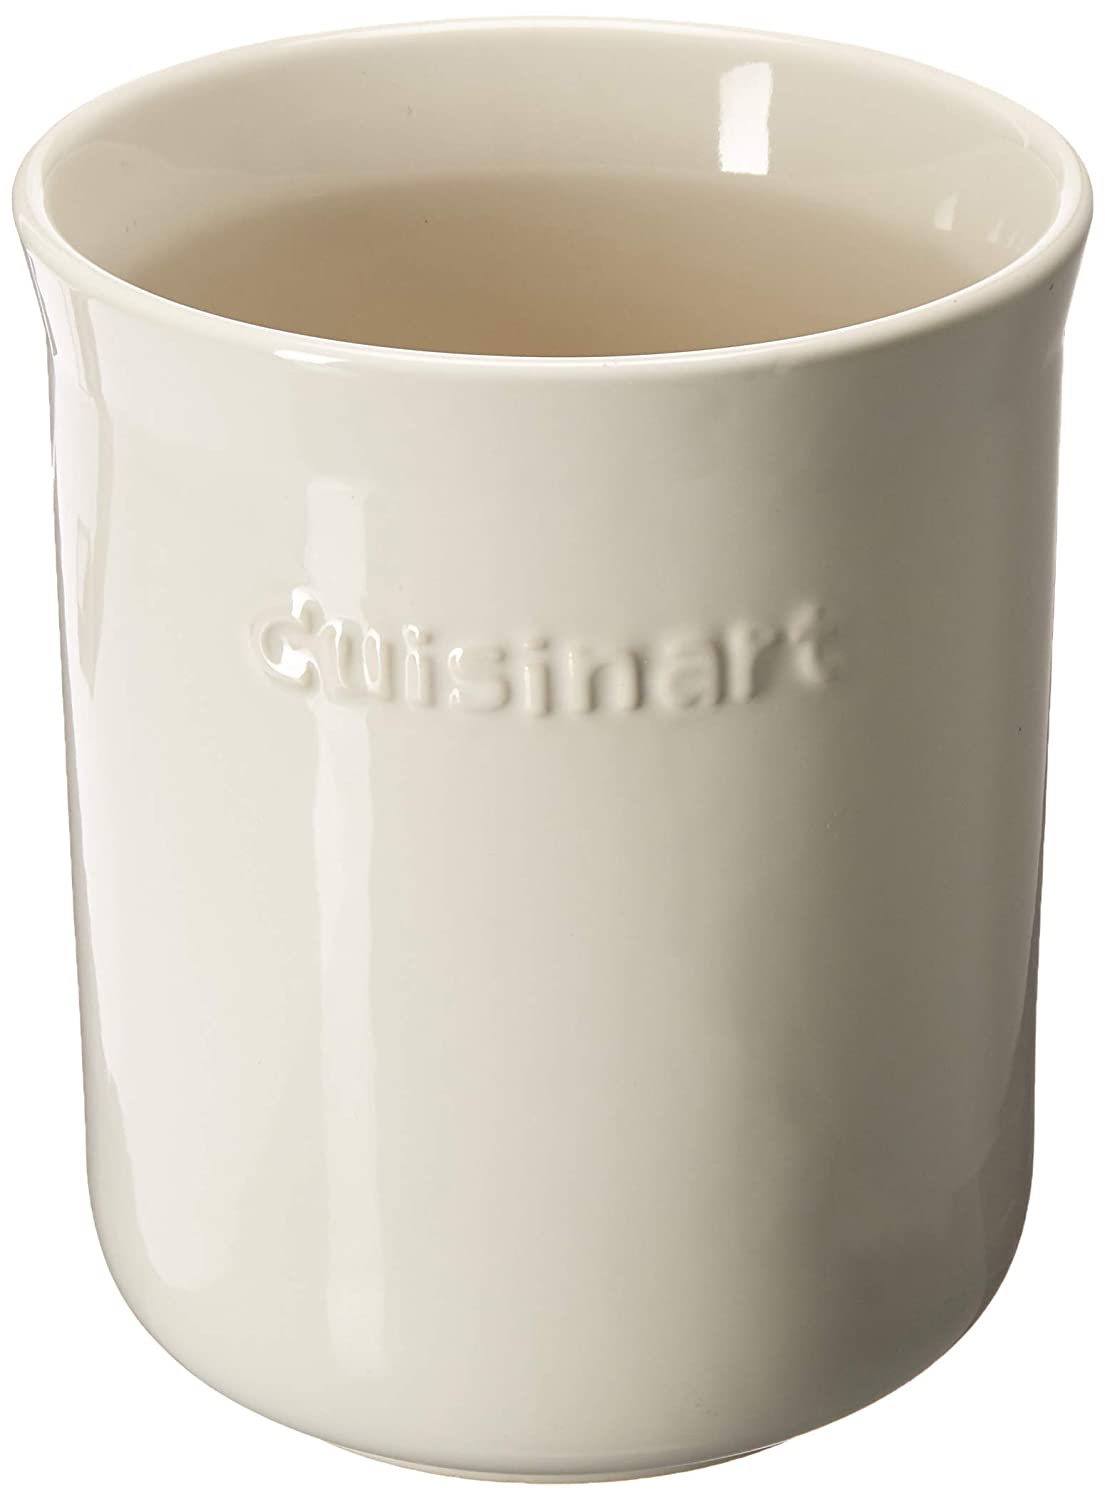 Cuisinart CTG-00-CCRC Ceramic crock, One Size, Cream